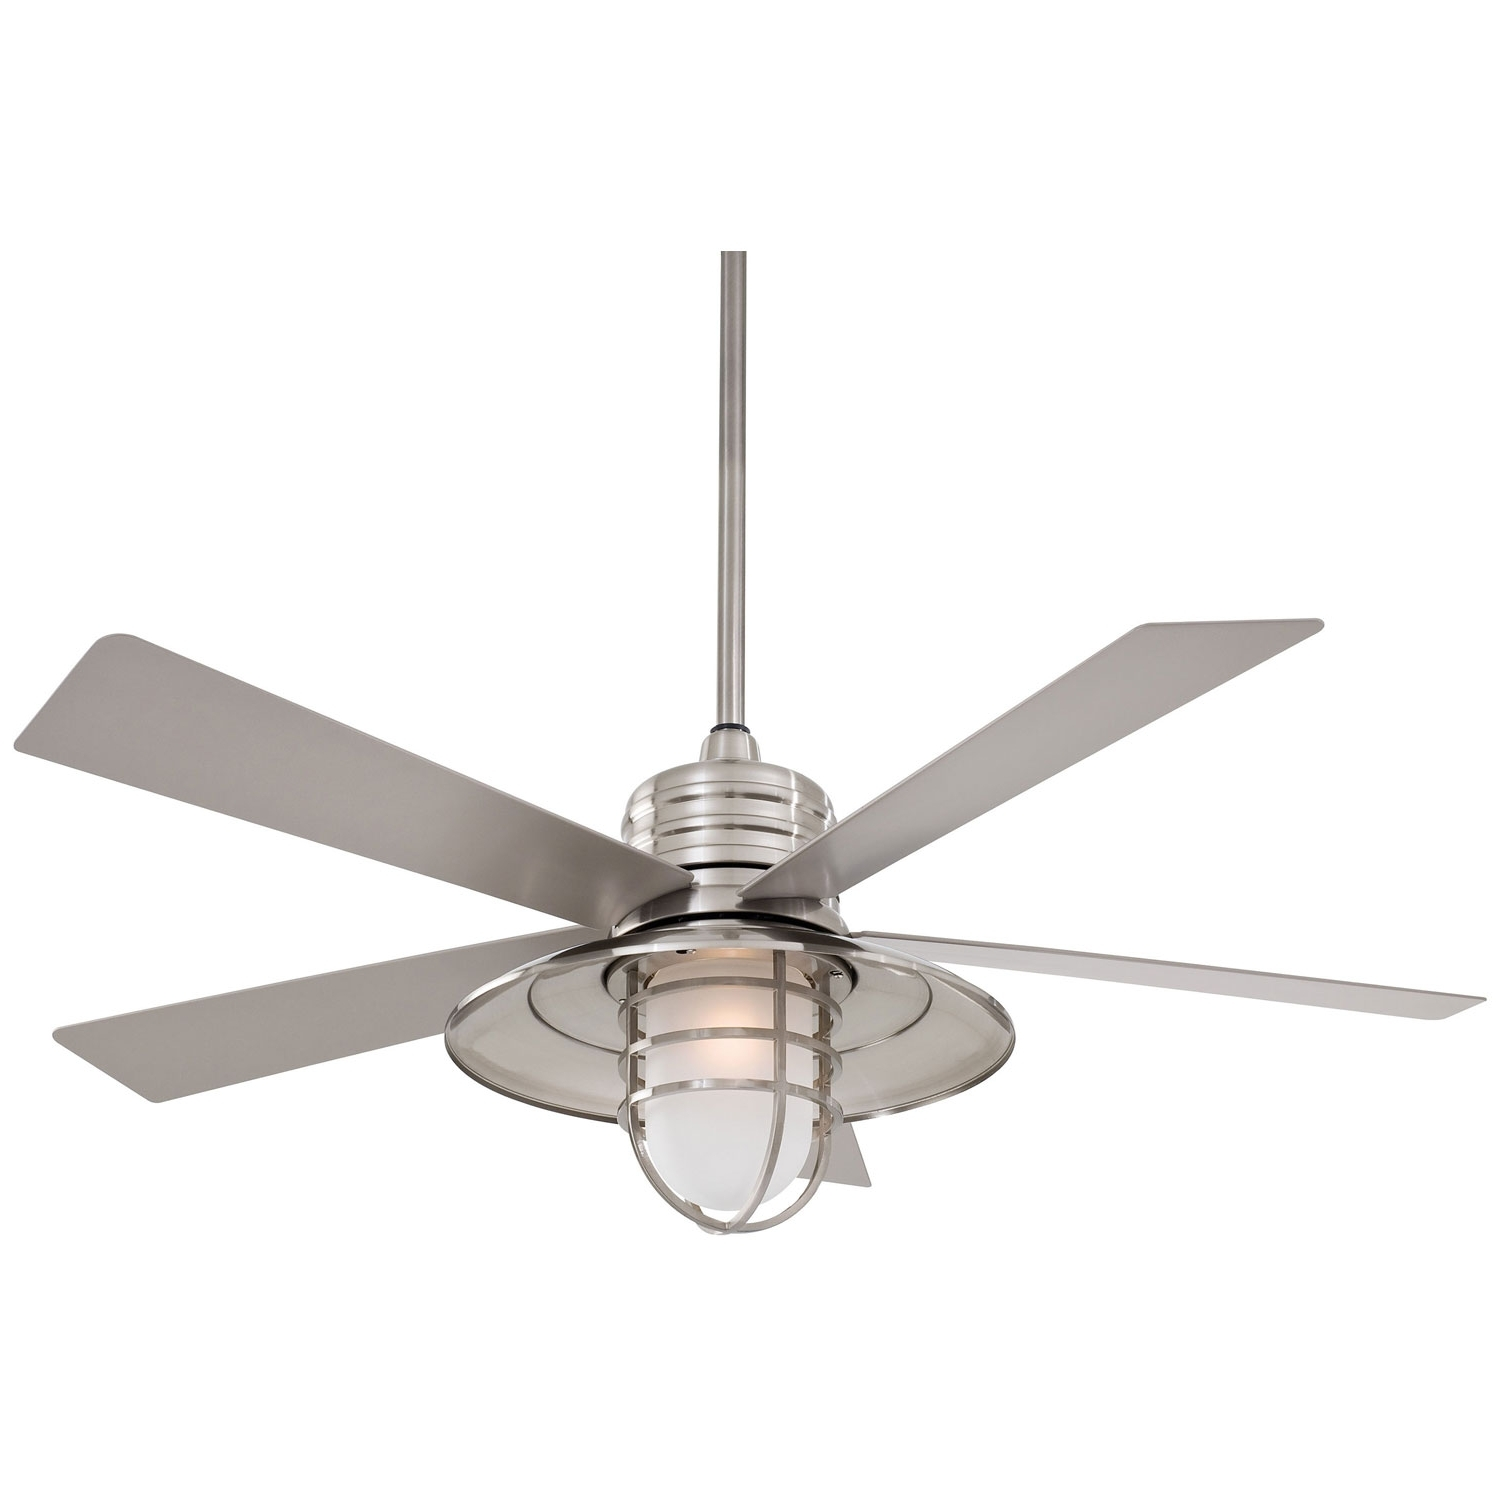 Outdoor Ceiling Fans For Wet Locations Inside Most Popular Minka Aire Rainman Brushed Nickel 54 Inch Blade Indoor/outdoor (View 10 of 20)